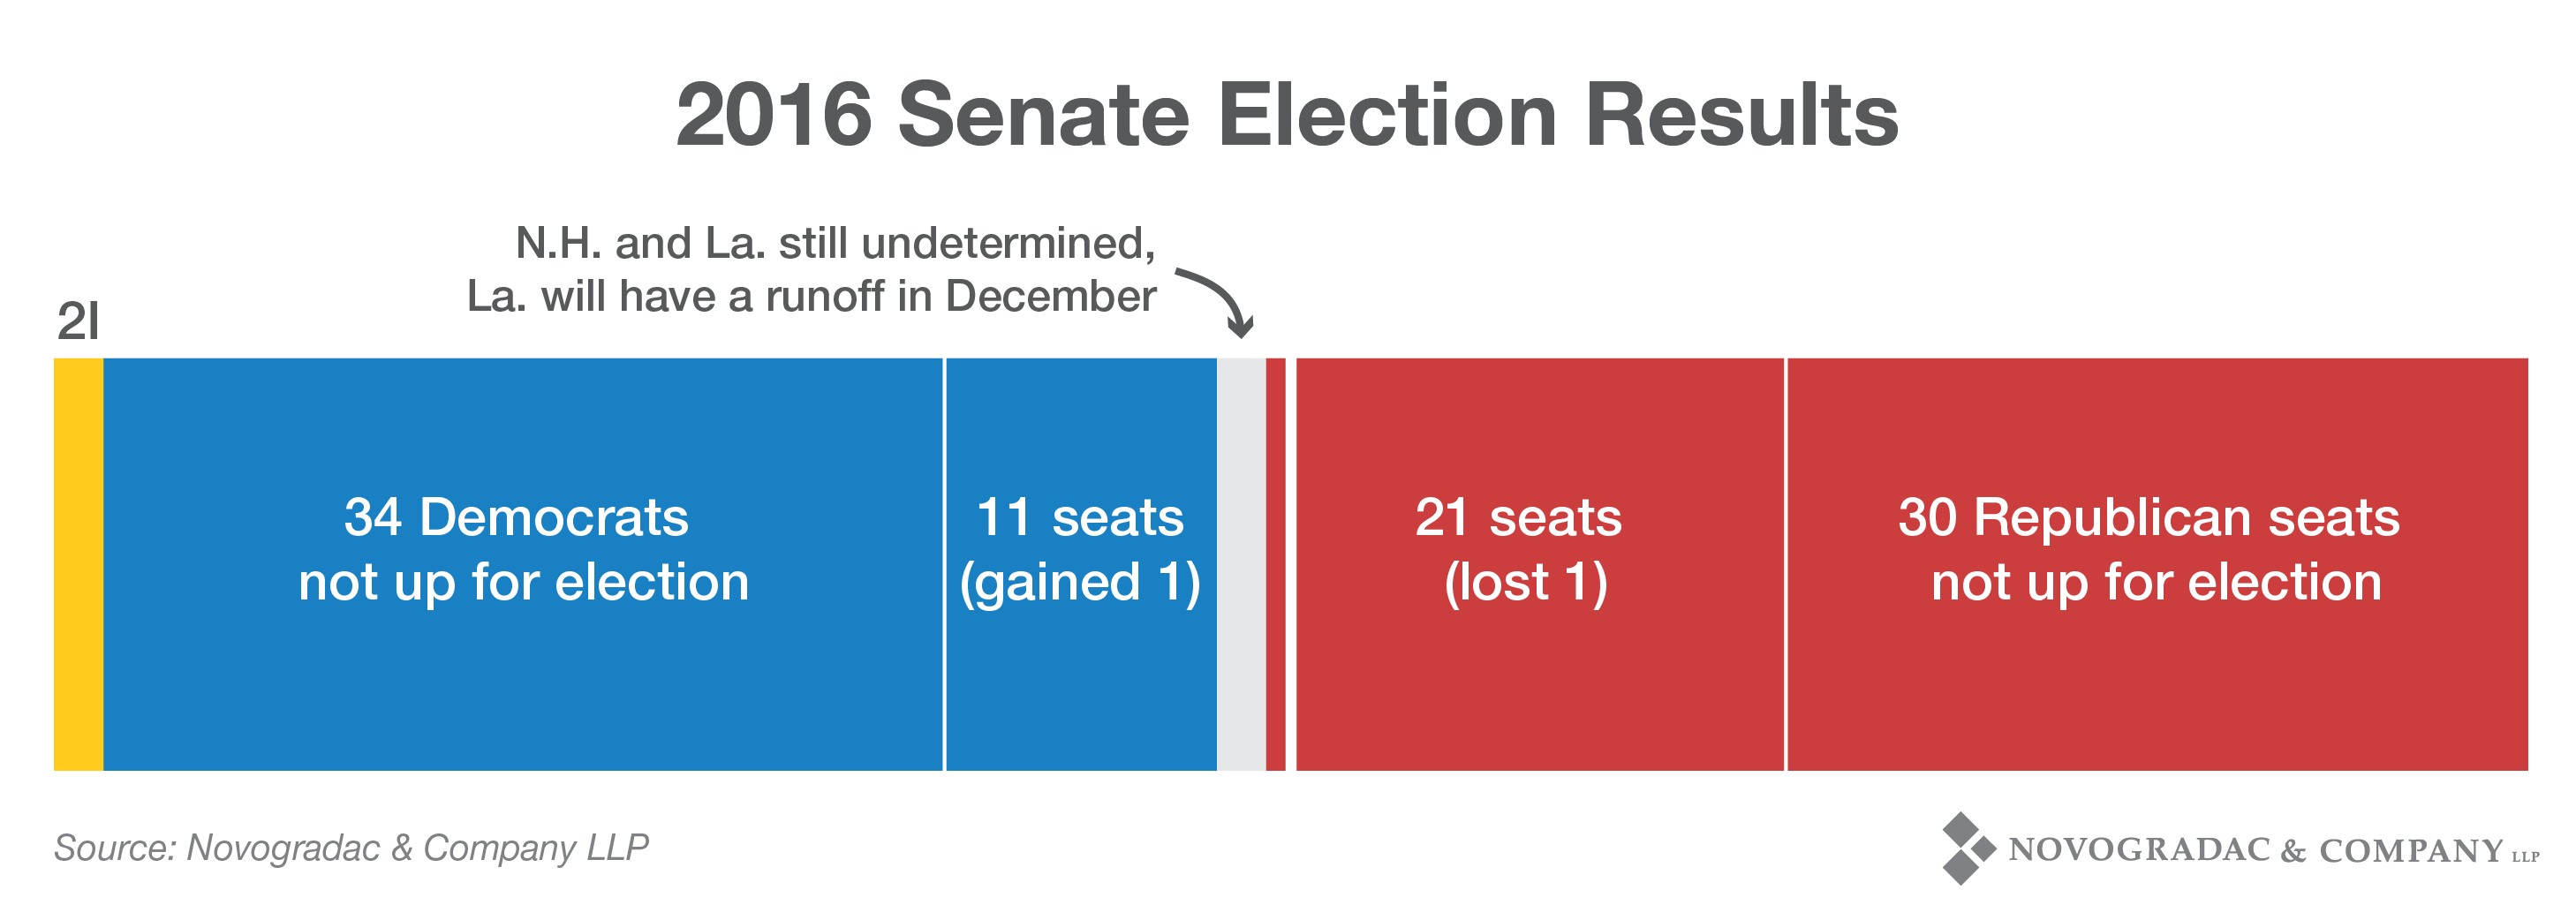 Blog Chart 2016 Senate Election Results